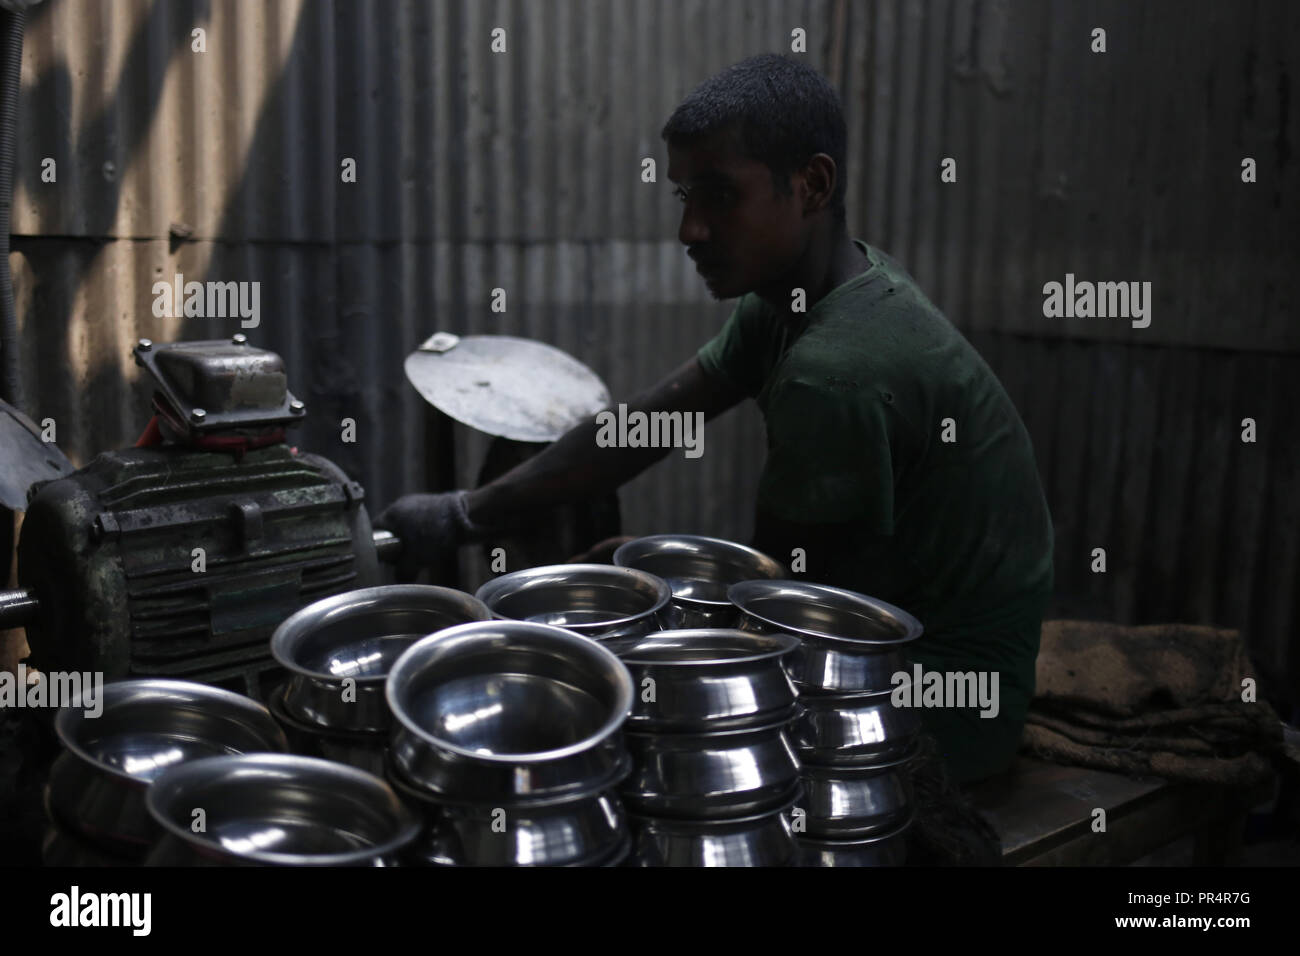 September 29, 2018 - Dhaka, Bangladesh - Steel made utensil factory worker works on a very hazardous environment for low wages. (Credit Image: © MD Mehedi Hasan/ZUMA Wire) - Stock Image